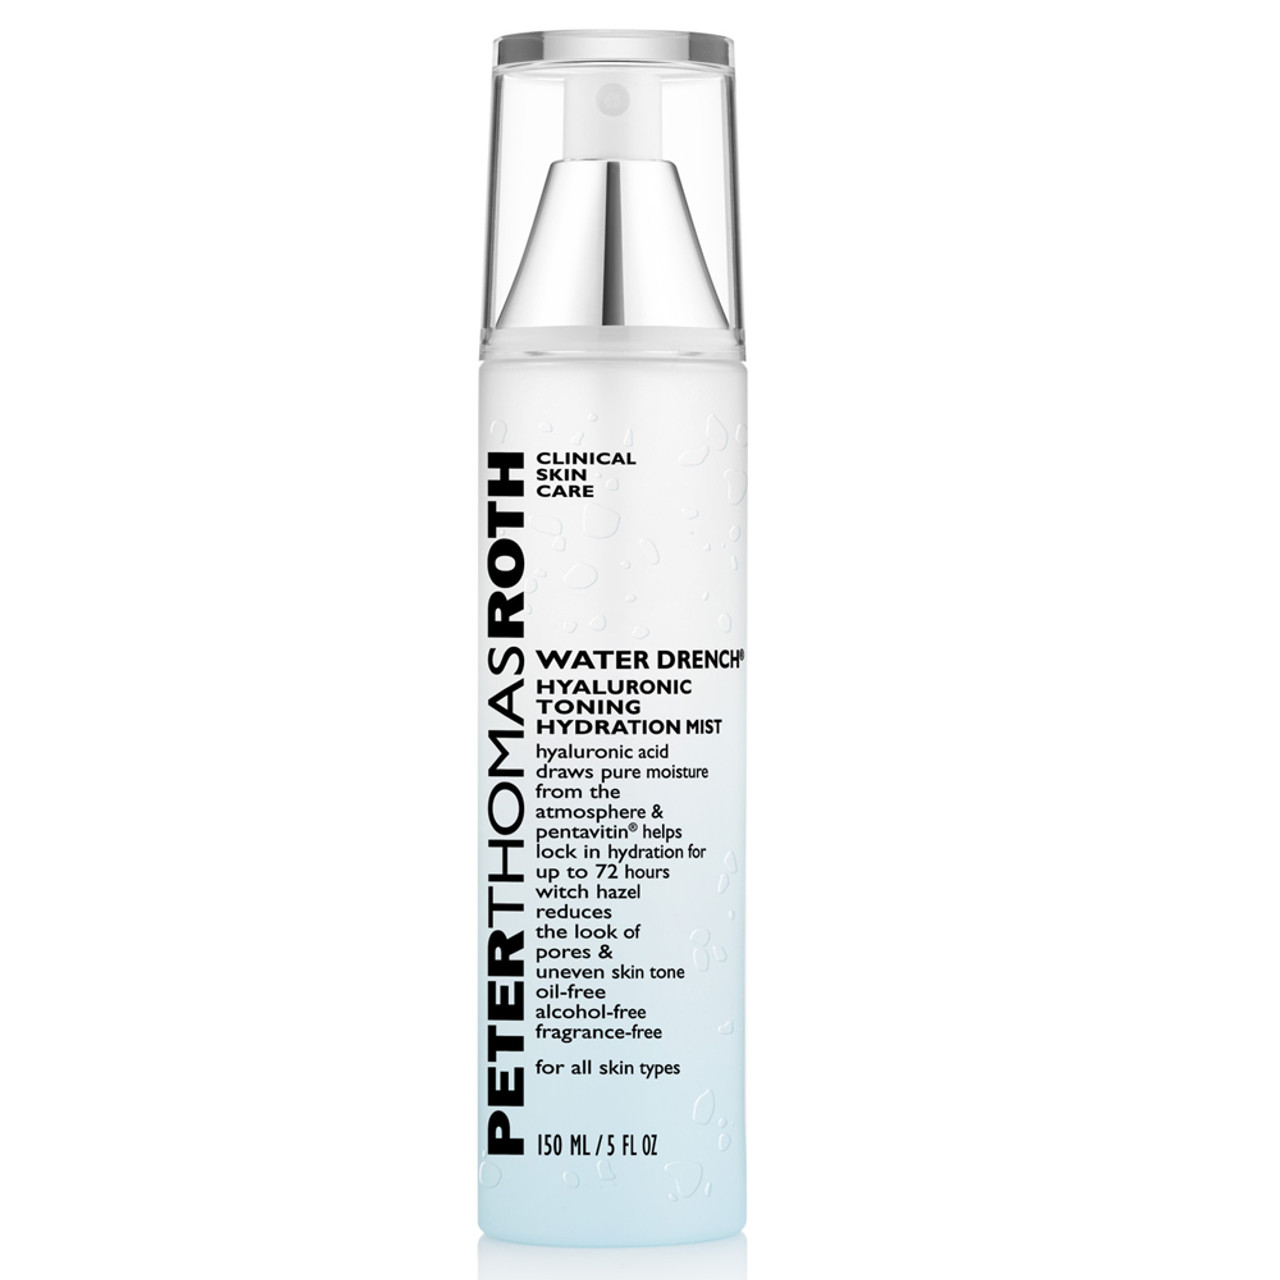 Peter Thomas Roth Water Drench Hyaluronic Cloud Hydrating Toner Mist BeautifiedYou.com